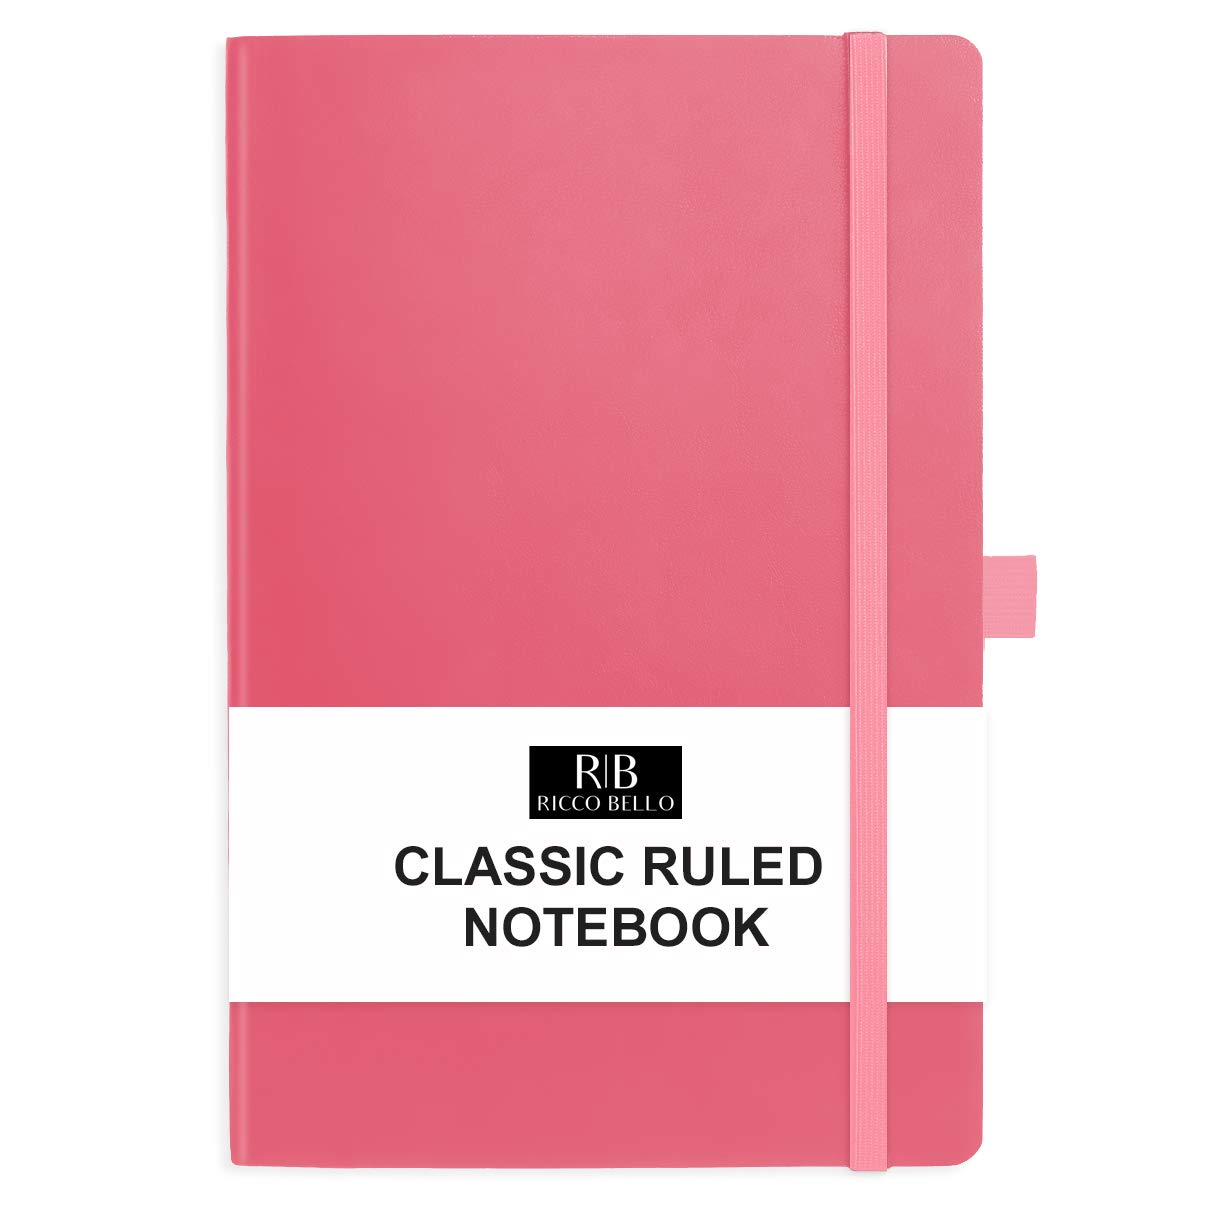 RICCO BELLO Classic College Ruled Hardcover Journal Notebook, Elastic Band Closure, Pen Holder, Vegan Leather, 5.7 x 8.4 inches (Pink)